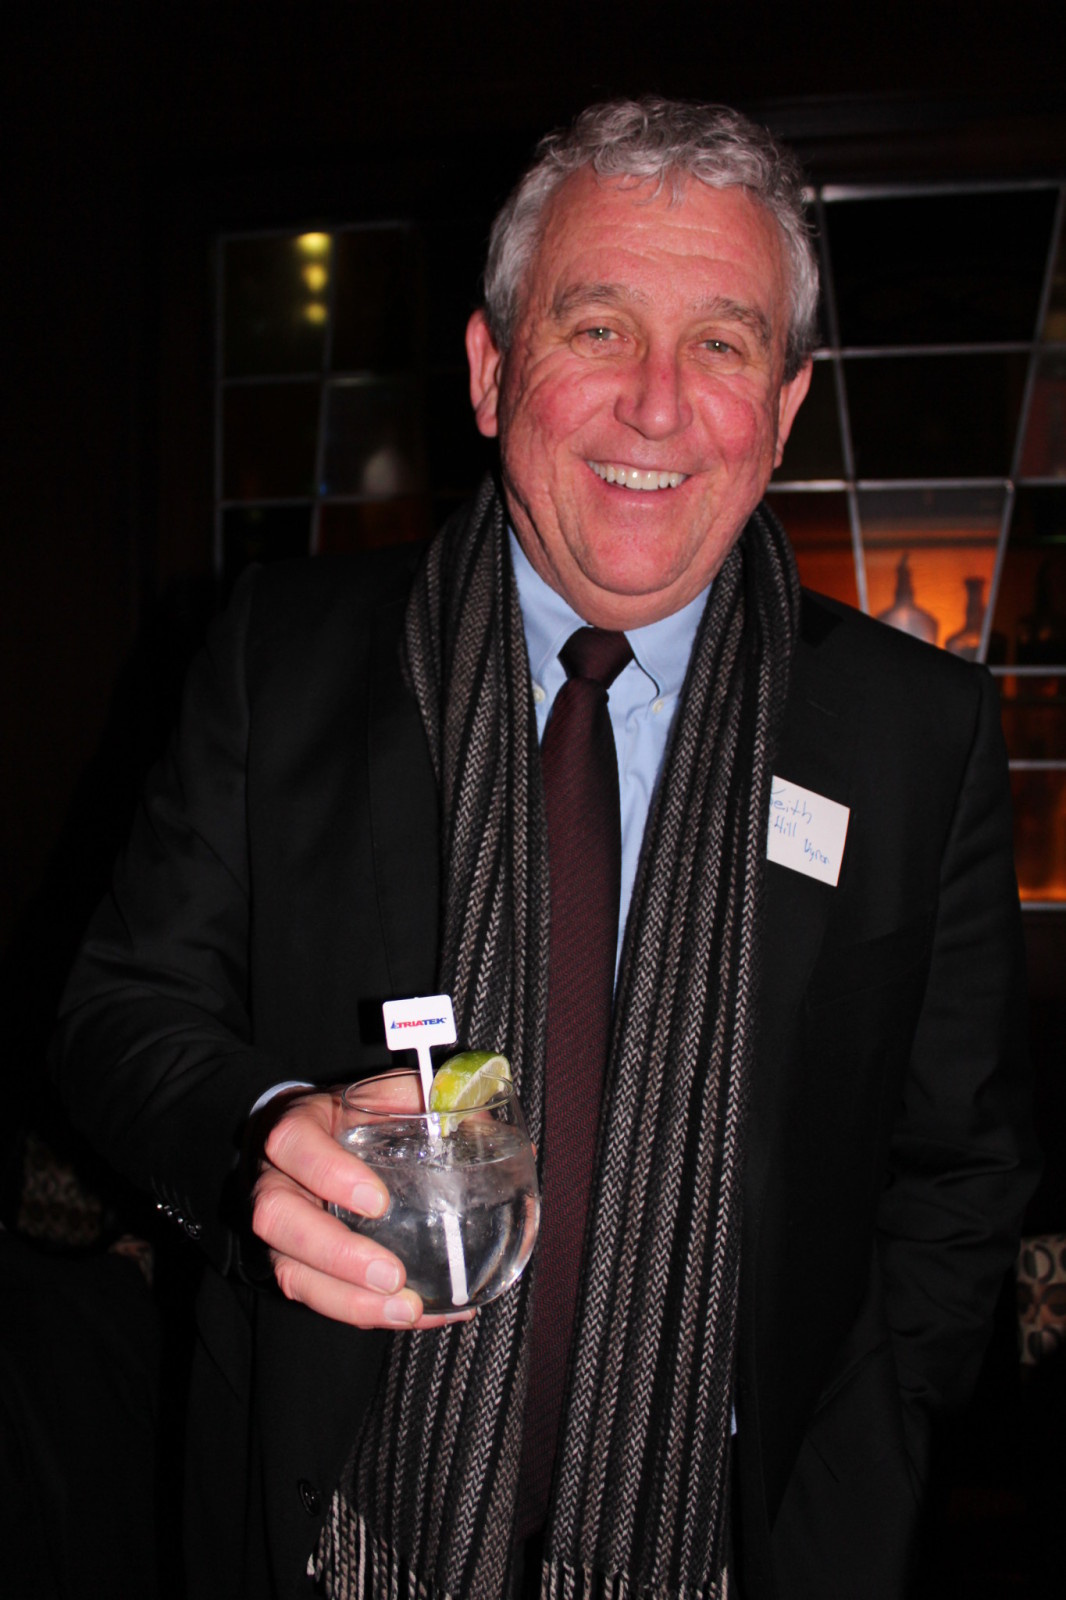 Keith Hill with Signature Cocktail